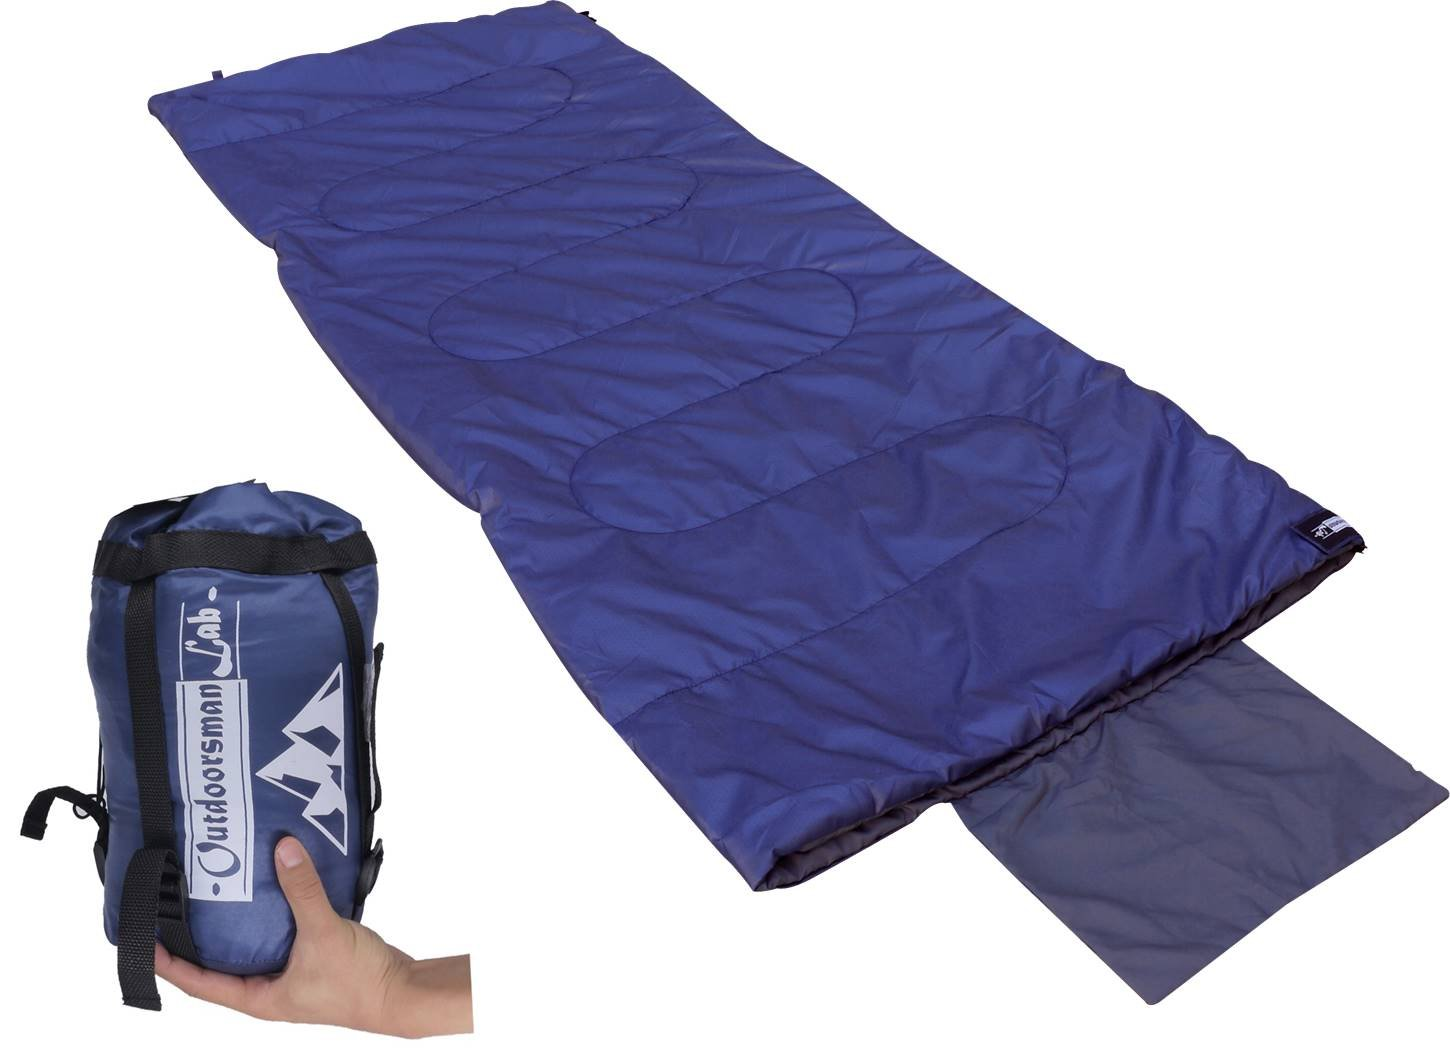 OutdoorsmanLab Sleeping Bag | 50-70F Warm & Cool Weather | Ultra Lightweight & Compact for Camping, Backpacking, Outdoor Events | for Adults & Kids | Includes Compression Sack 3